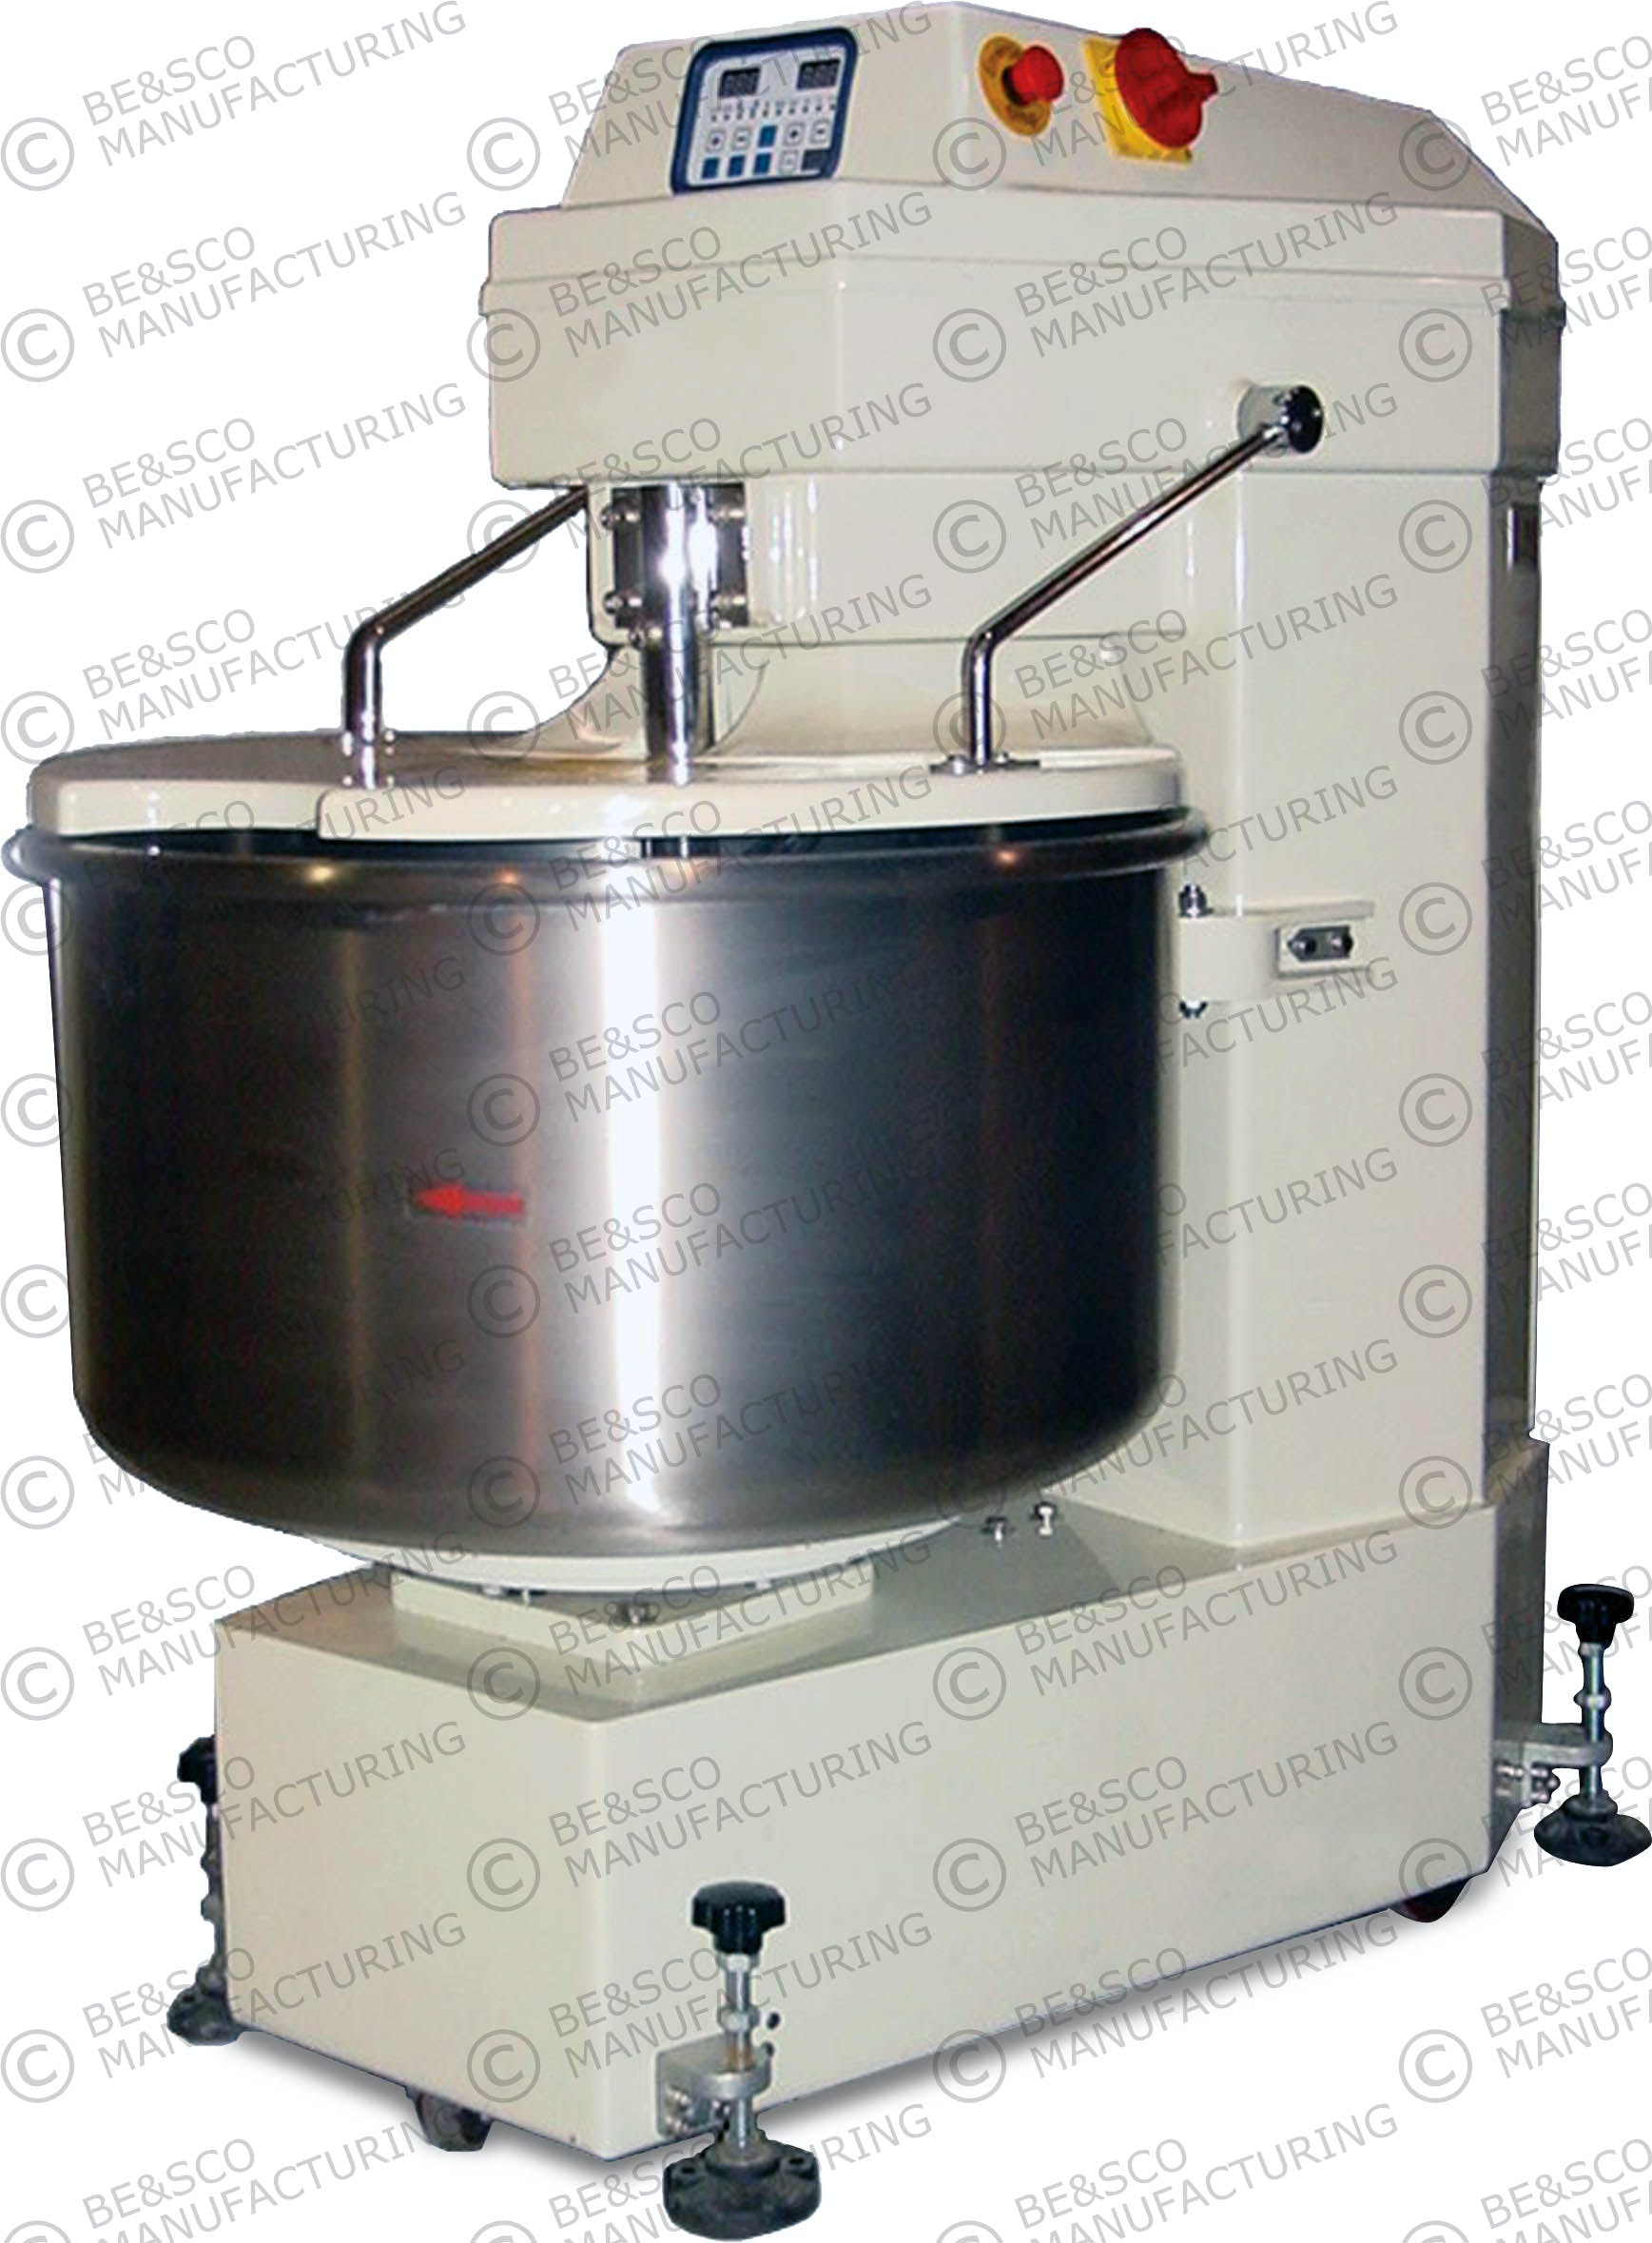 Spiral Mixers Tortilla press sold by BE&SCO